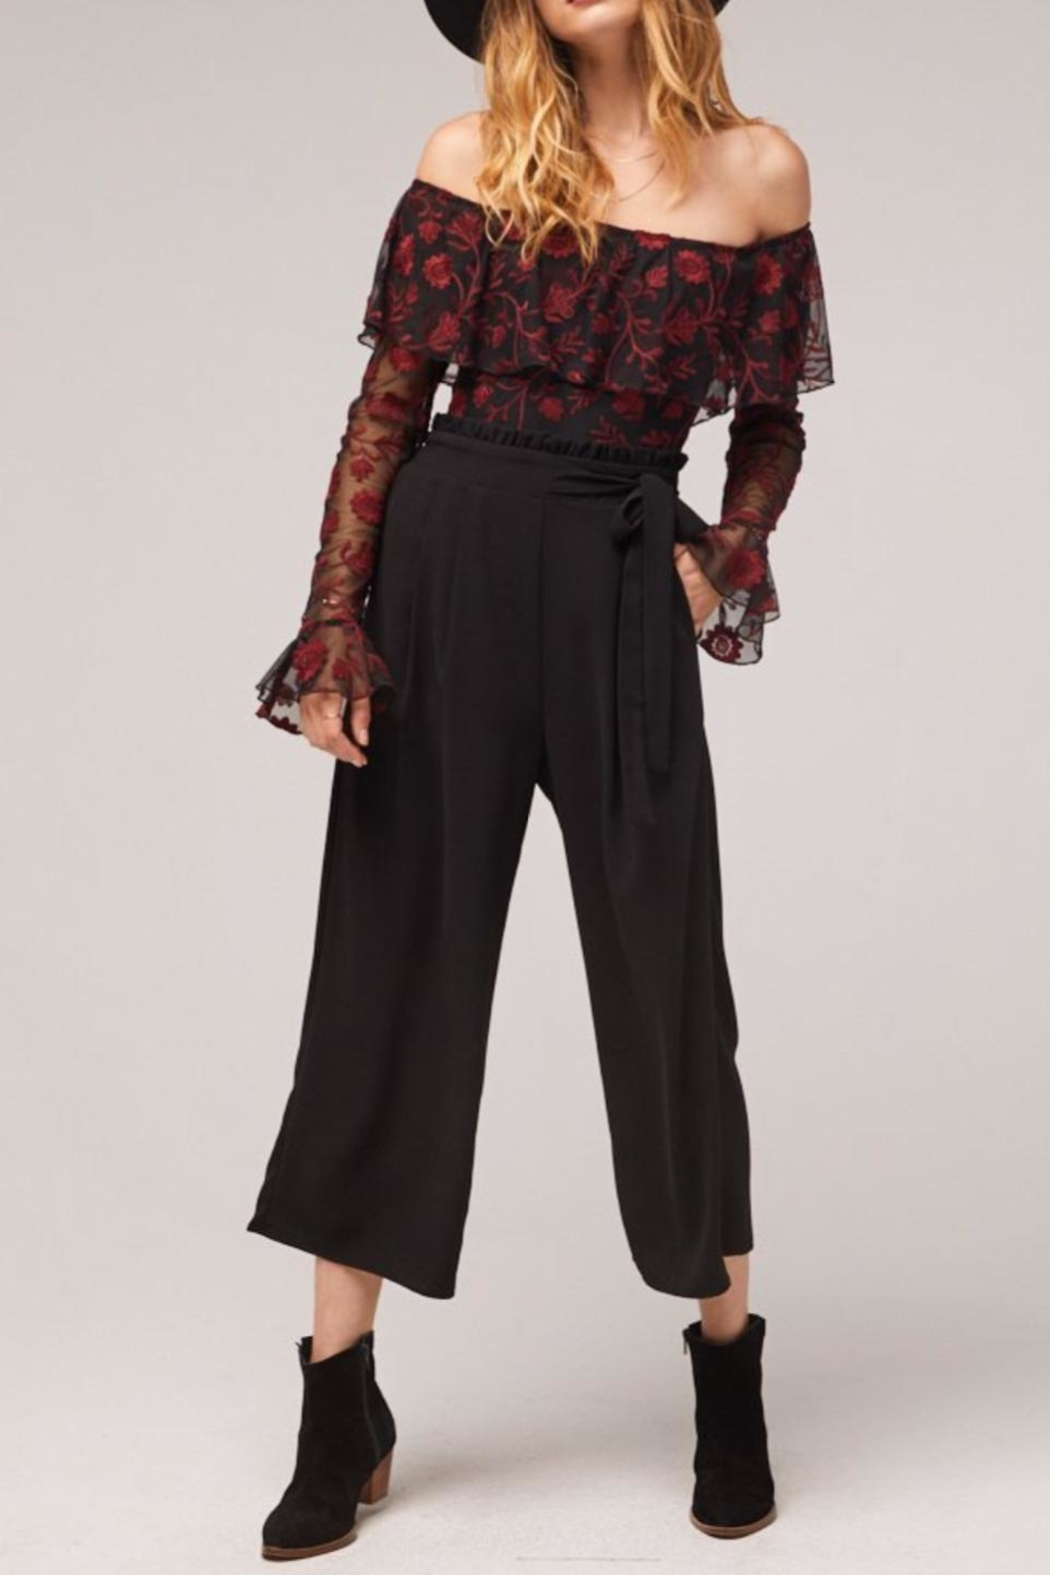 Band Of Gypsies Black Montana Pants - Main Image